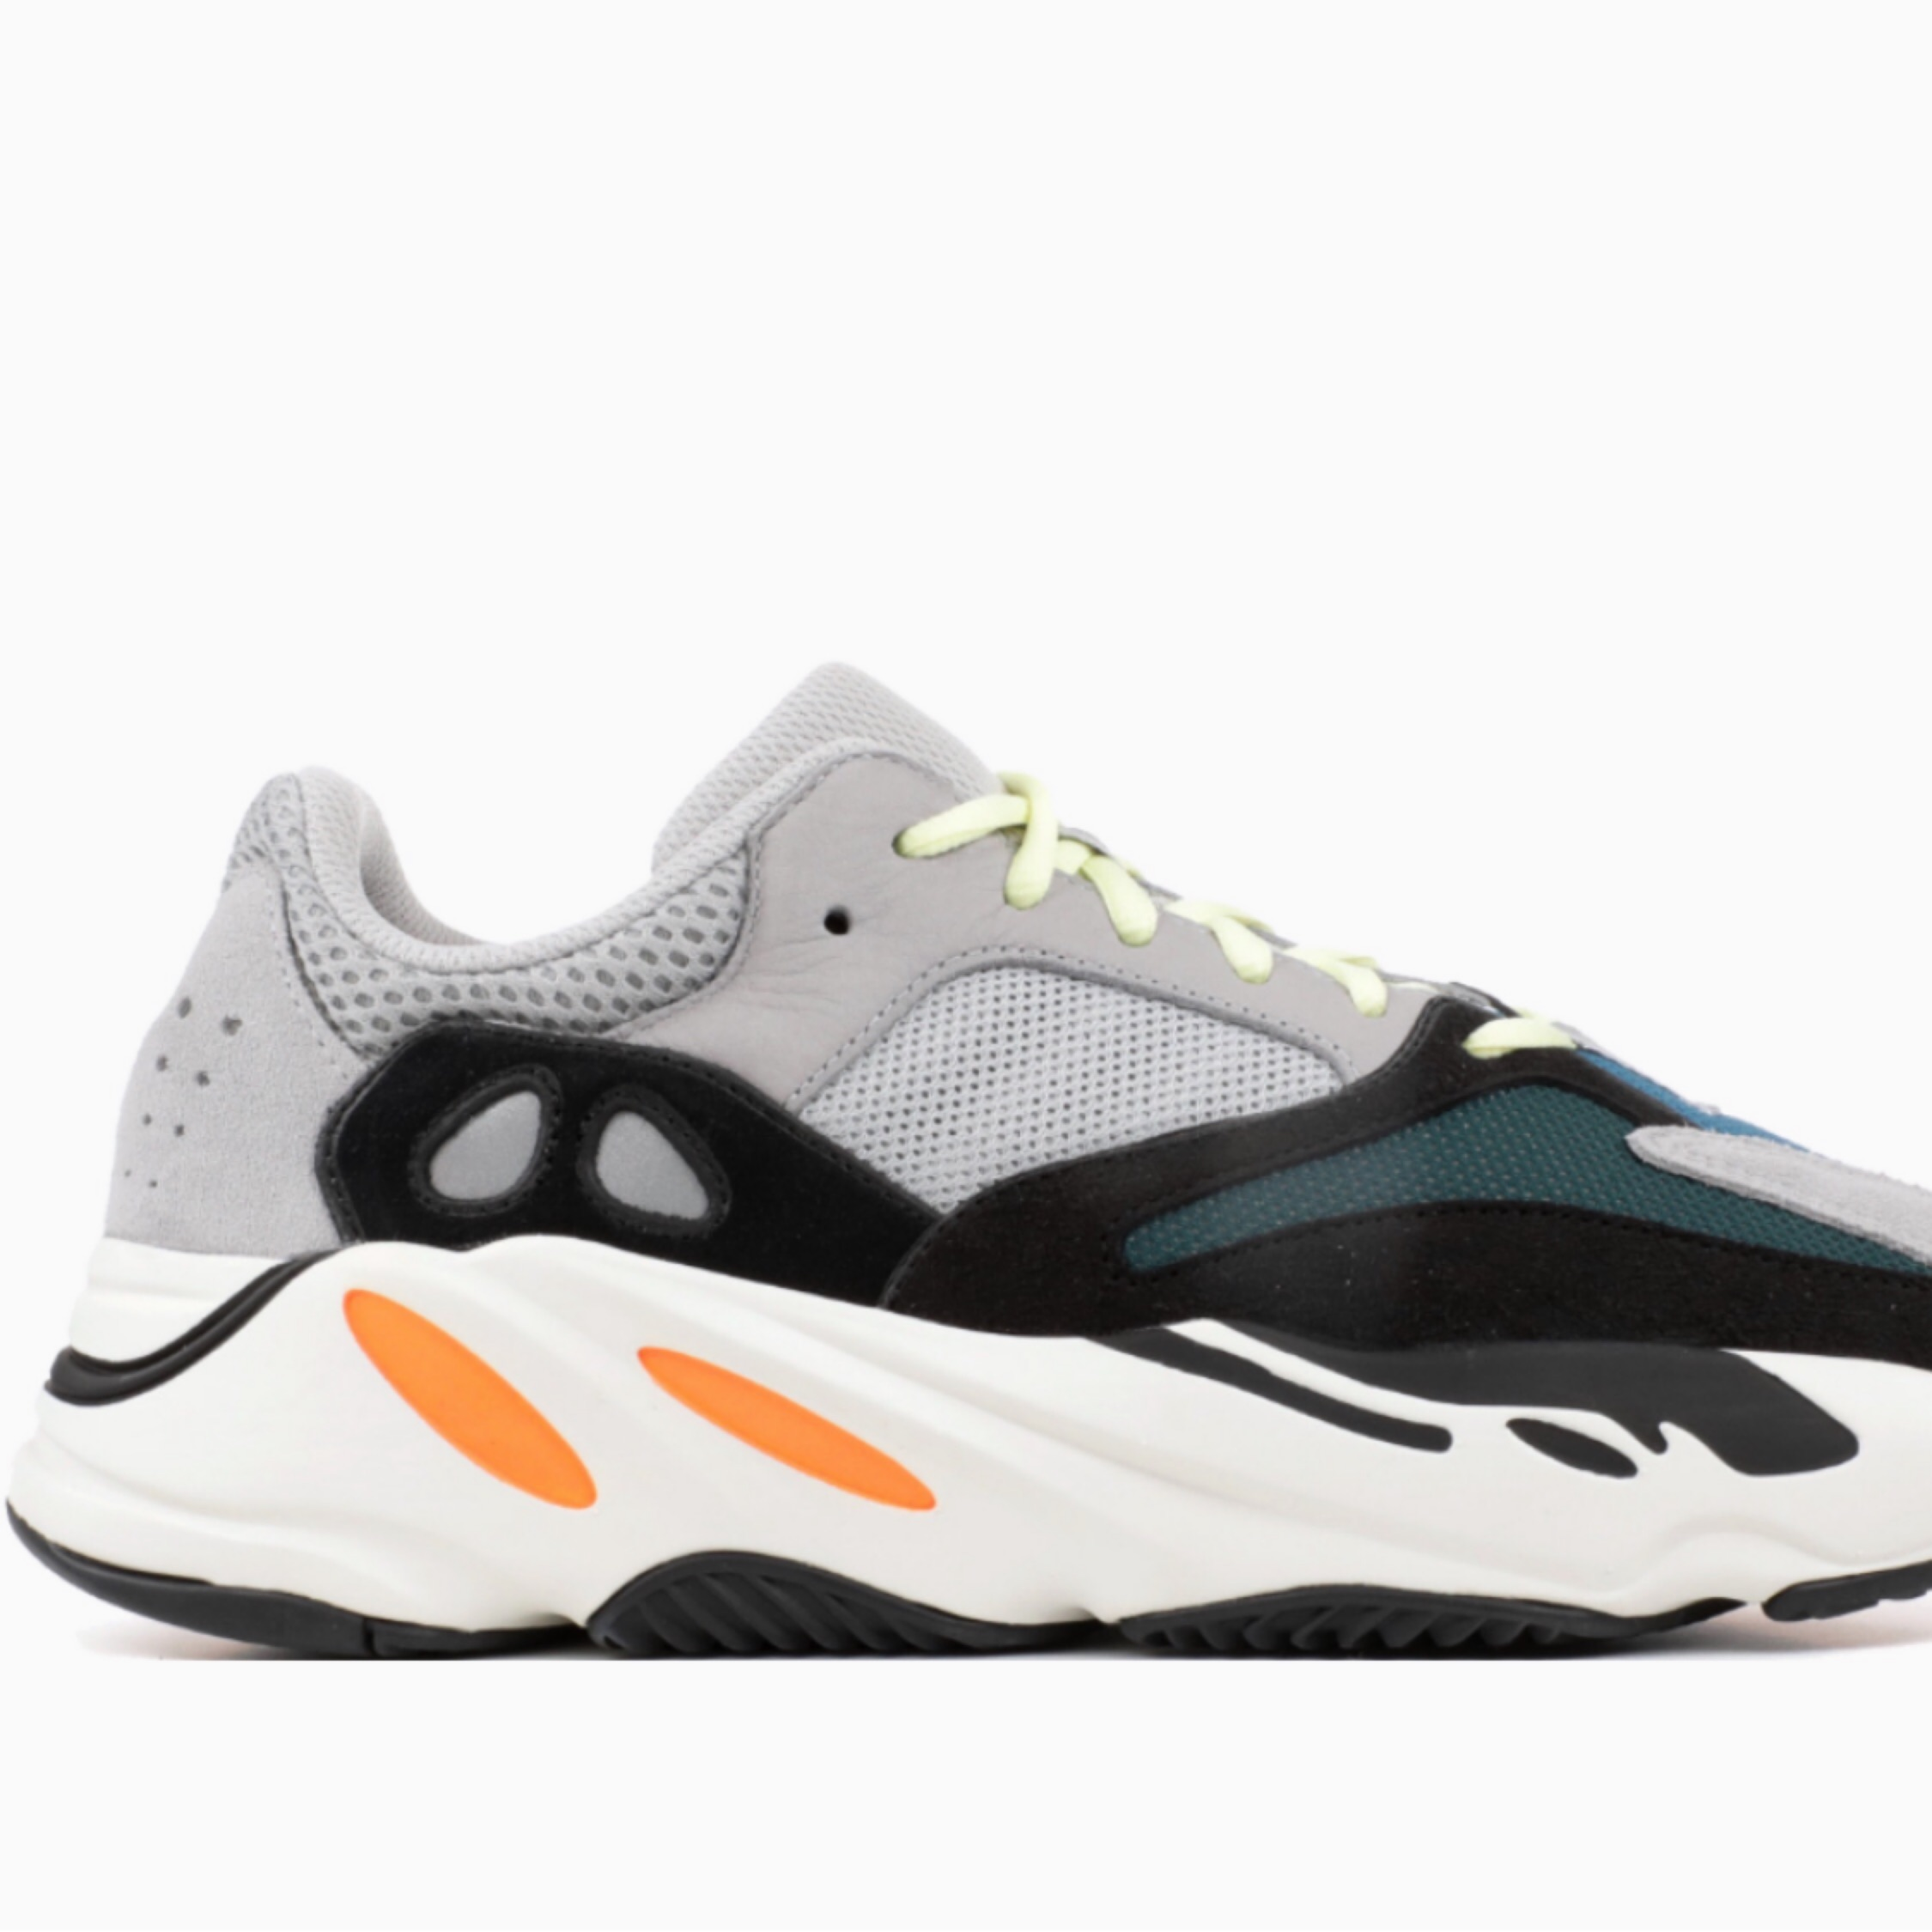 factory price 9433d 34753 Adidas Yeezy Boost 700 Wave Runner Solid Grey